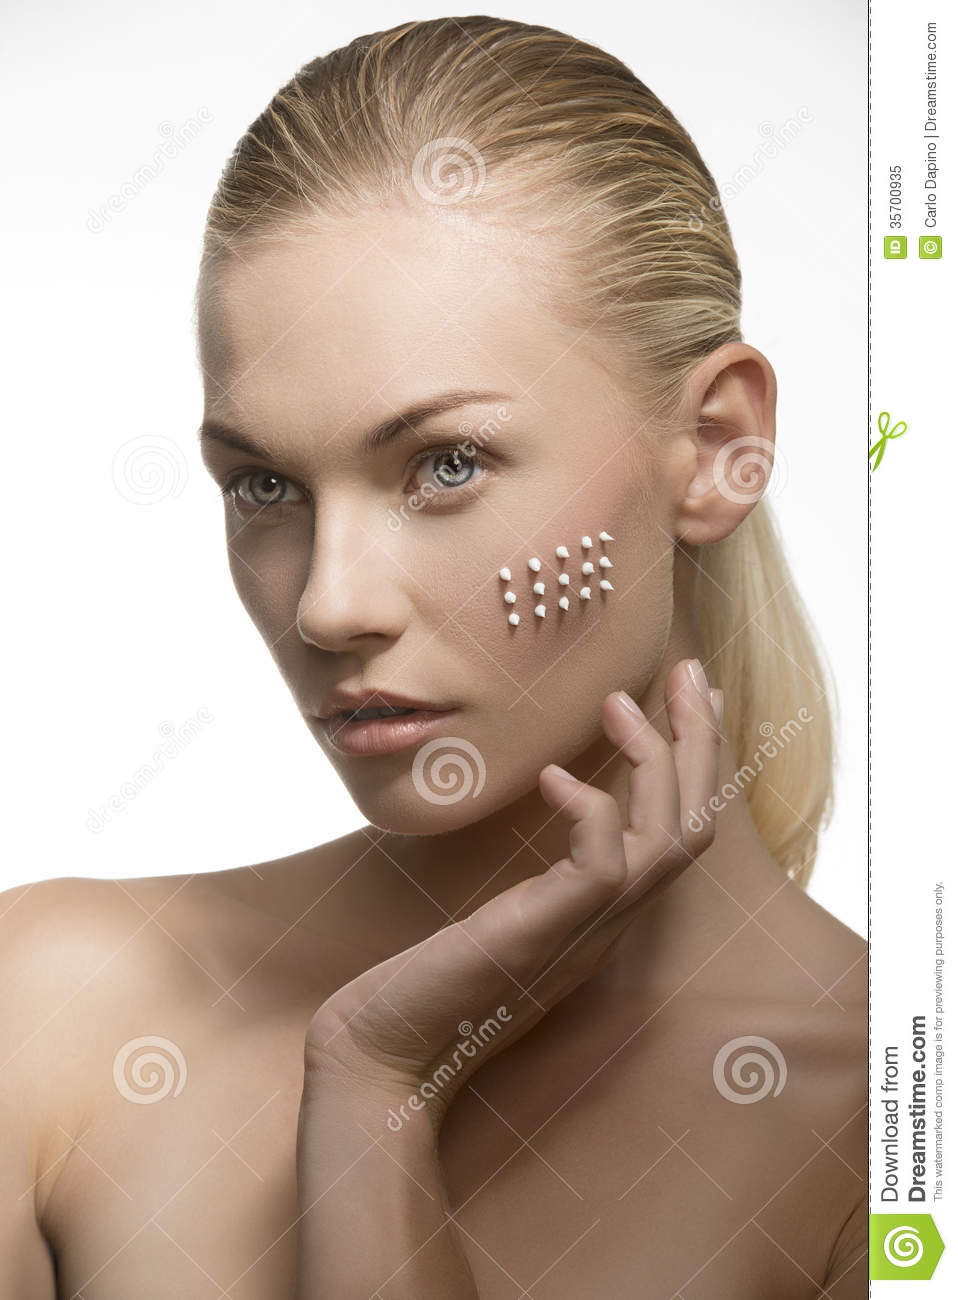 ... hair and naked shoulder applying cosmetic cream on her perfect visage